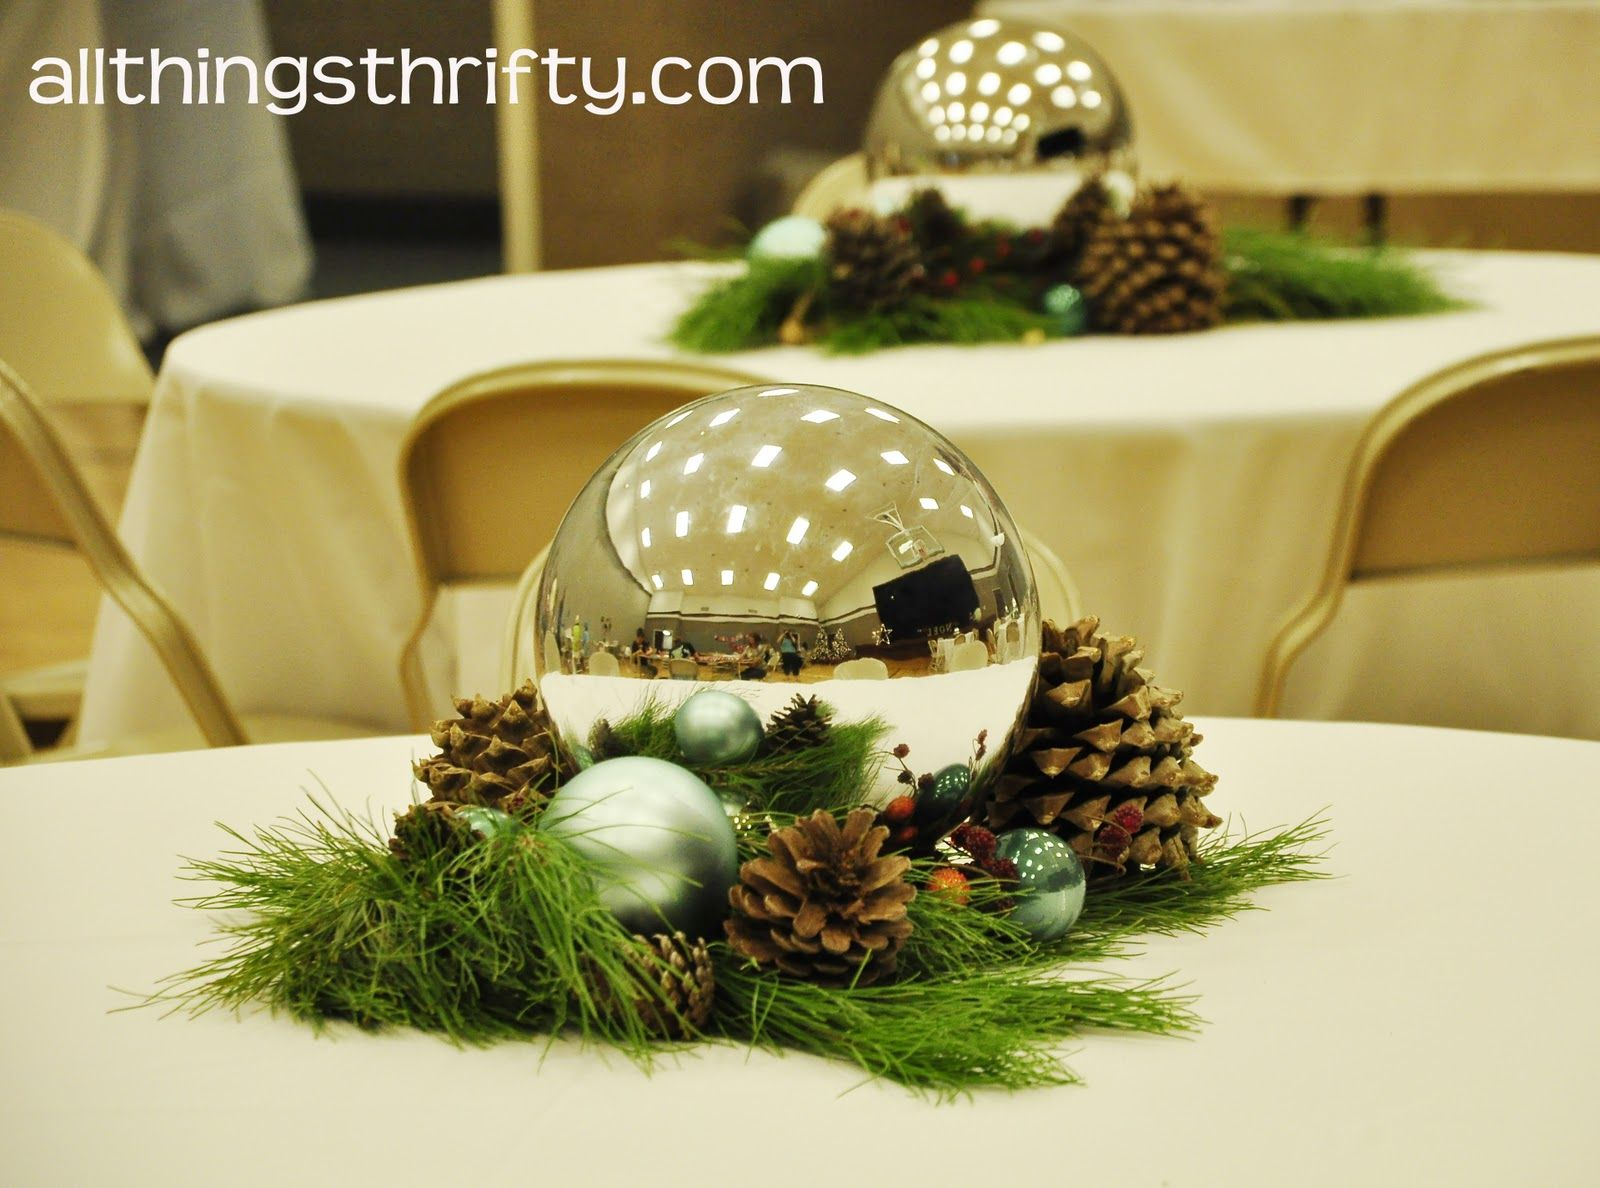 Summer clearance items ideas | Christmas centrepieces, Pine cone ...